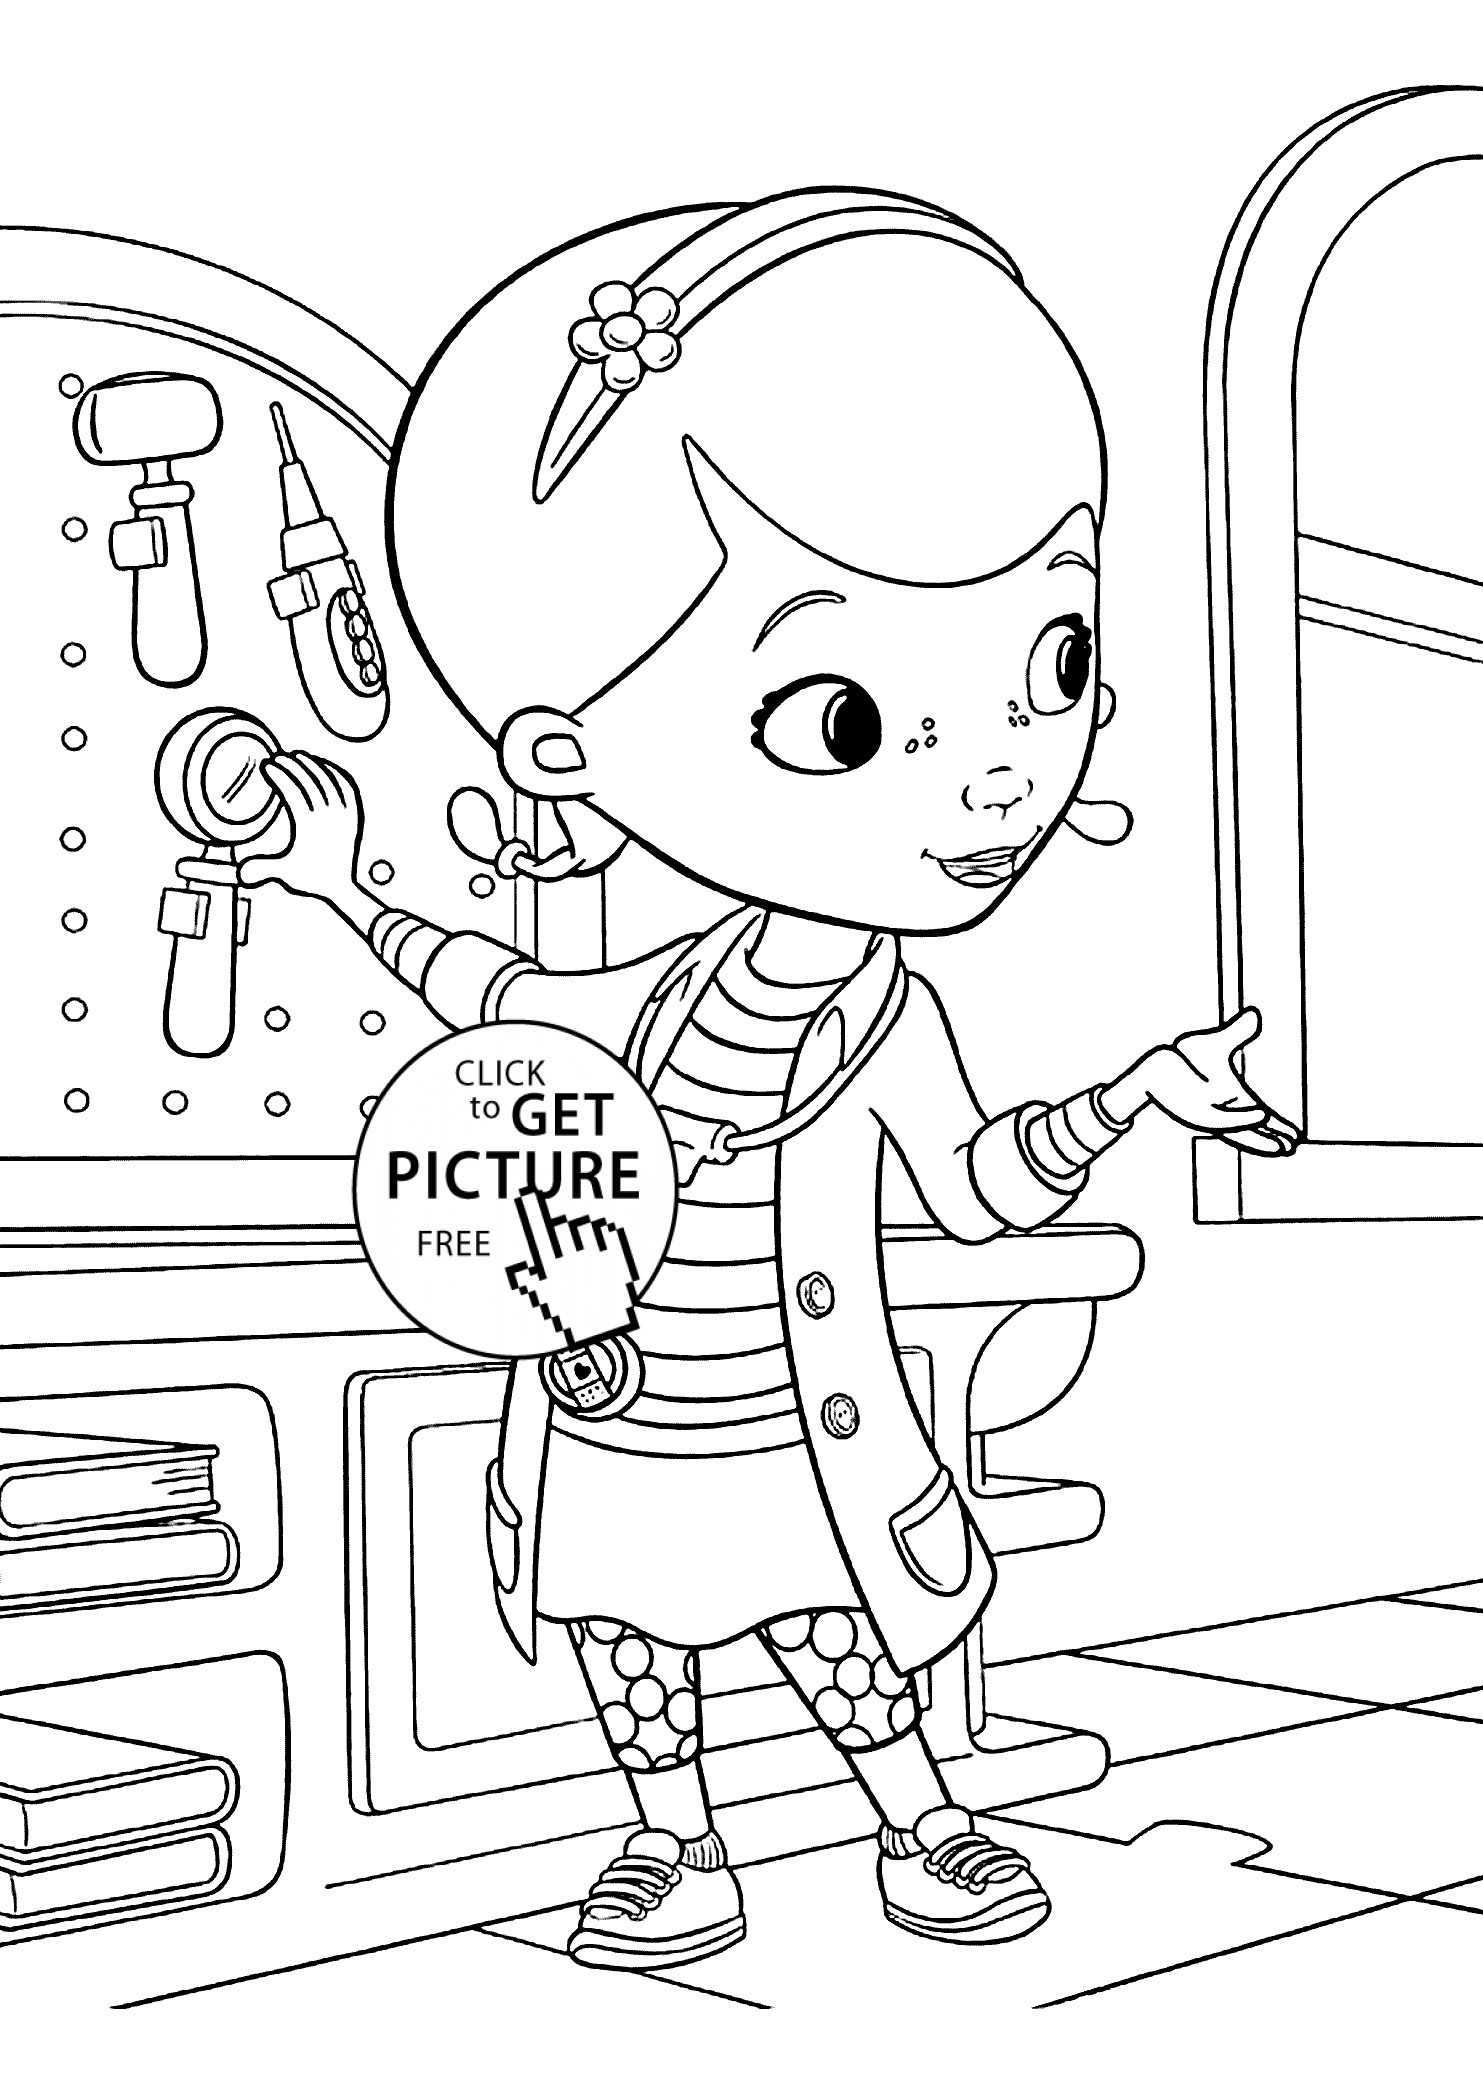 Hospital Coloring Pages Printables  Download 3r - Free For Children